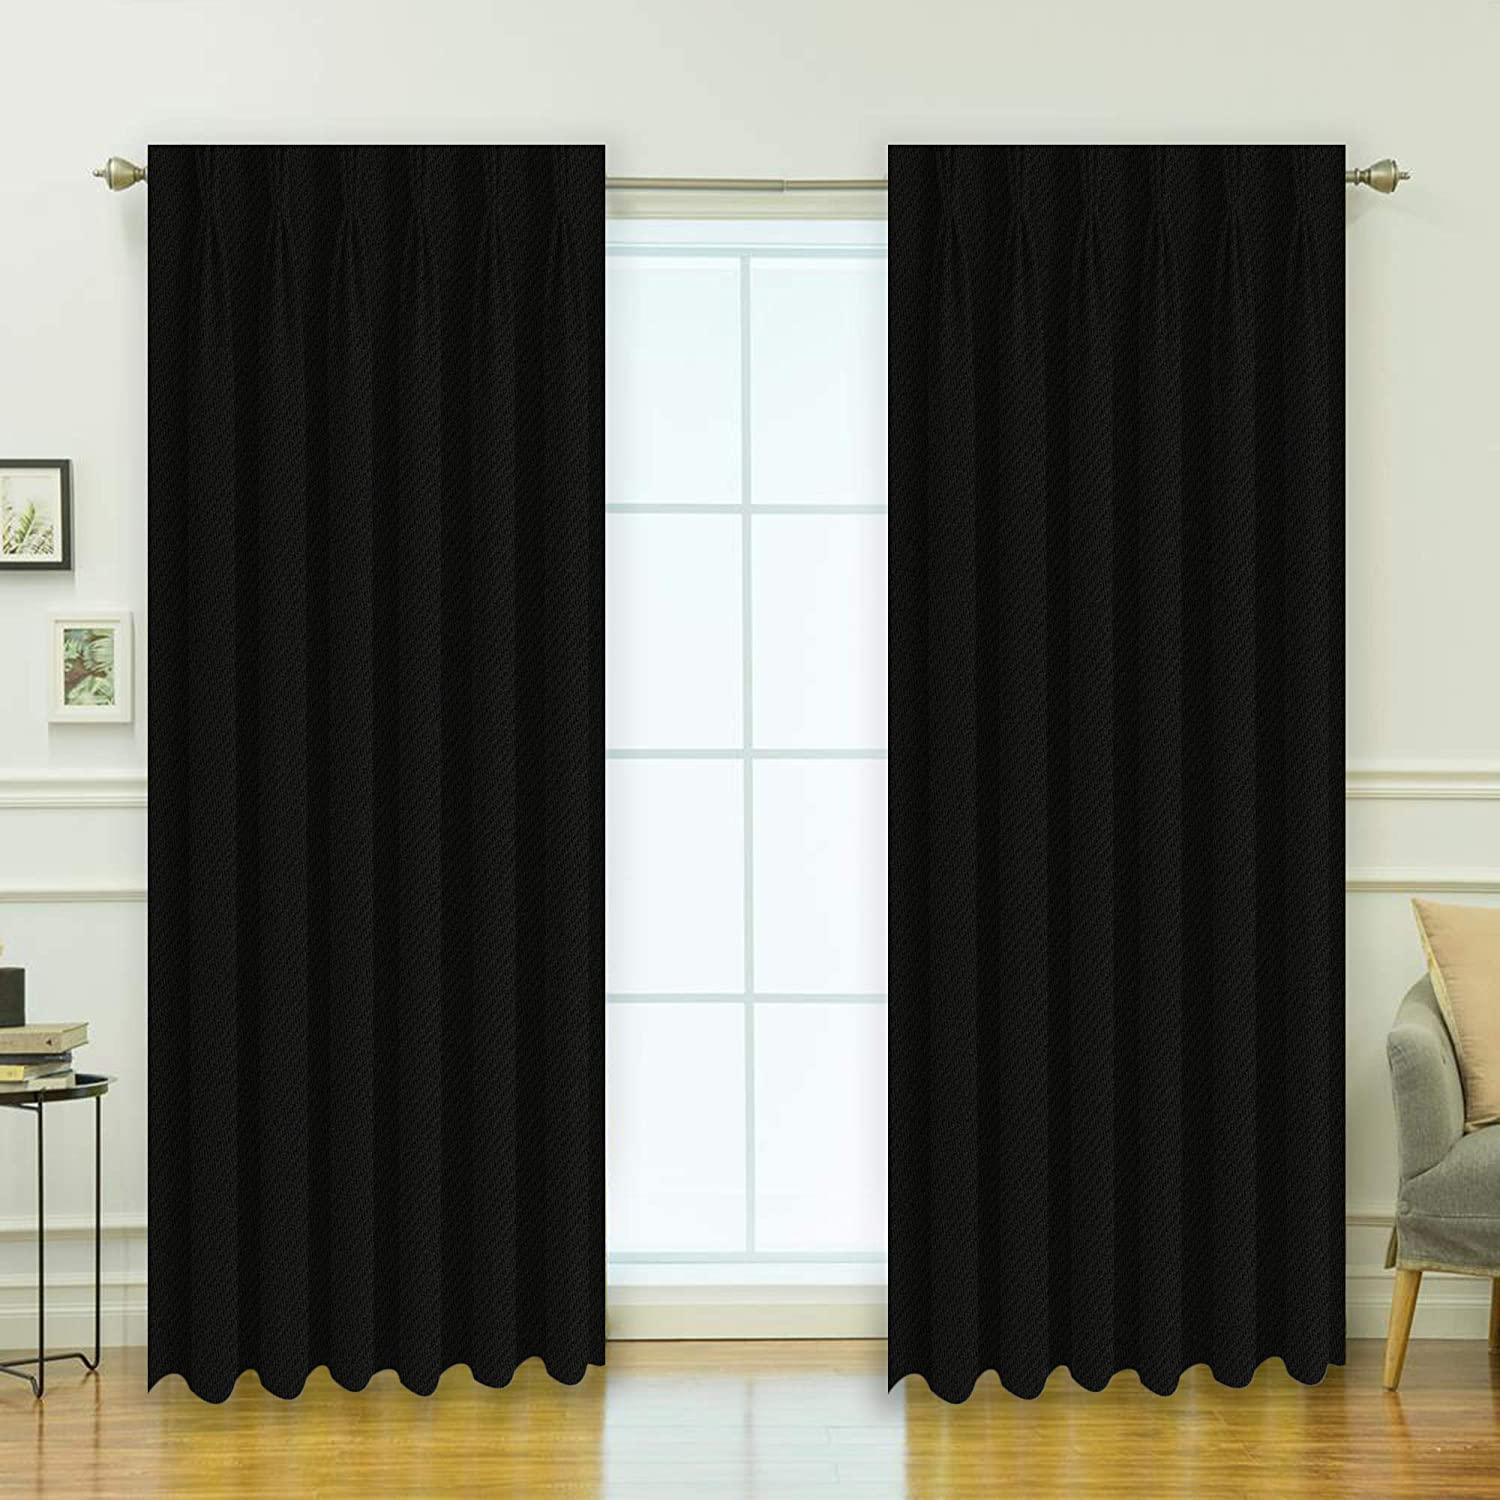 Buy Kurtains2fly Polyester Both Sided Room Darkening Blackout Pinch Pleat  Curtains 2 Panels (Window- 4.5 x 6 ft) Online at Low Prices in India -  Amazon.in